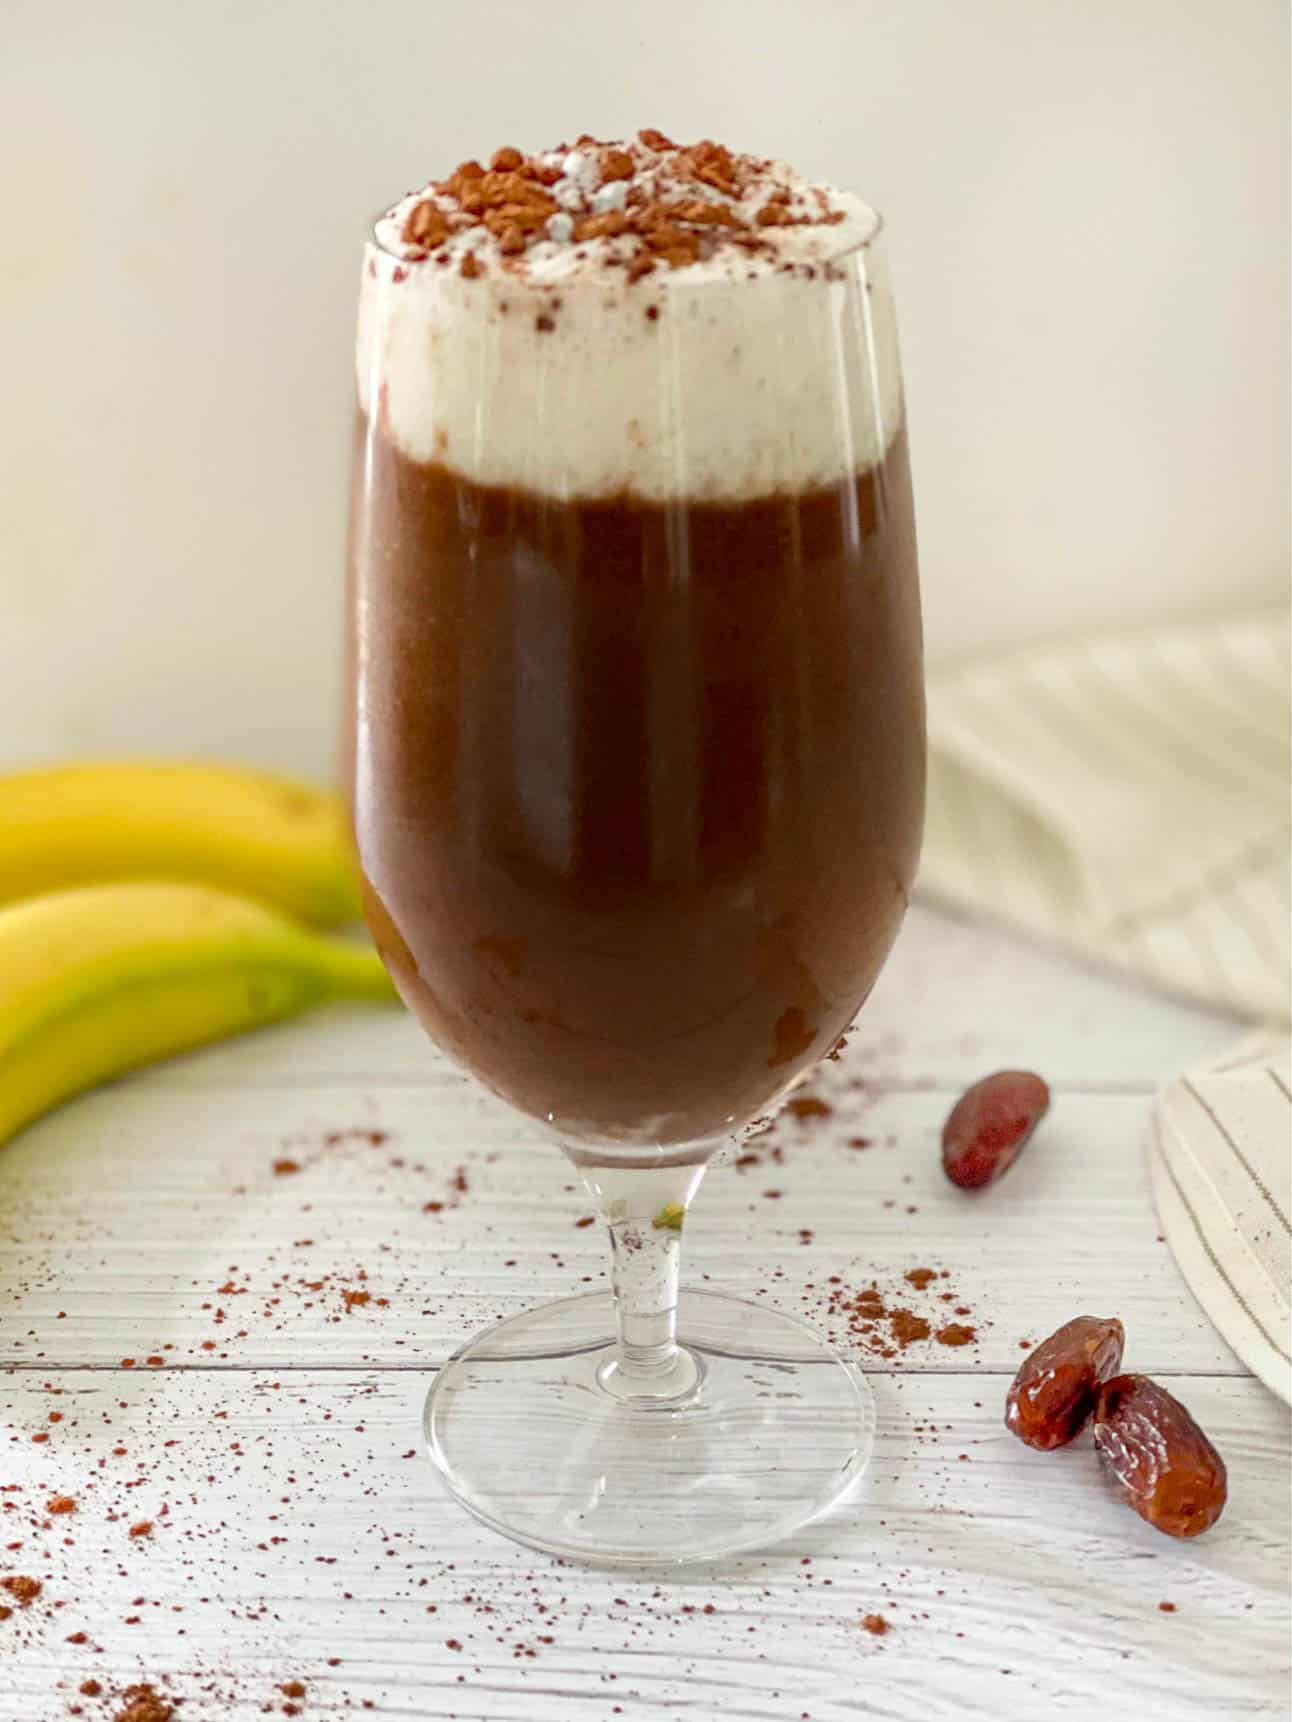 Clear glass with chocolate drink and frothed milk on top with sprinkle of cinnamon.